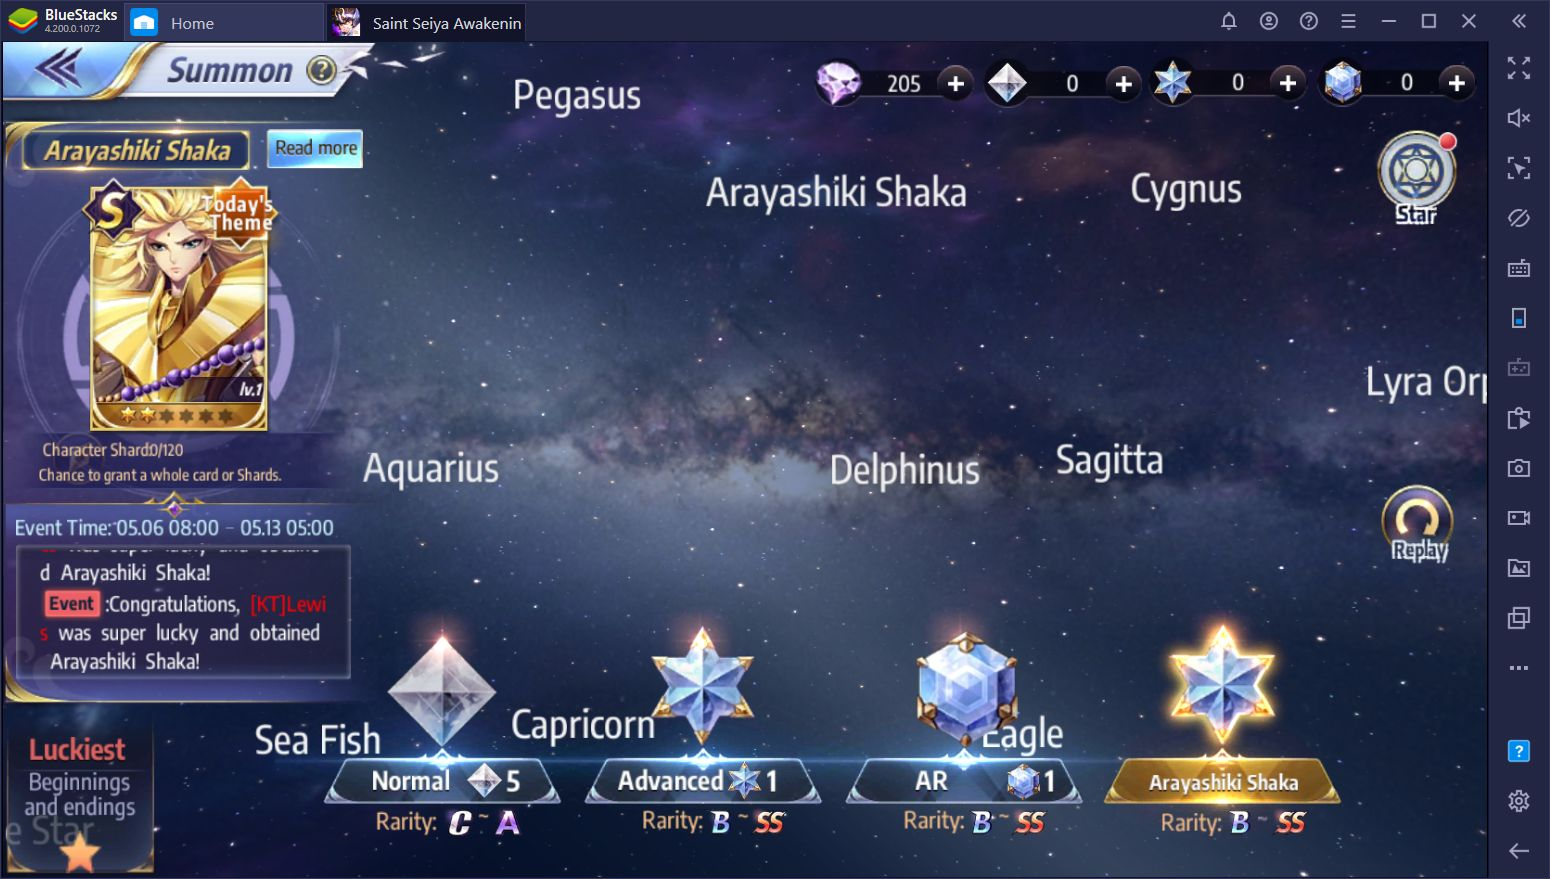 Saint Seiya Awakening on PC: From Summoning and Rerolling to Tier List – Everything You Need to Know